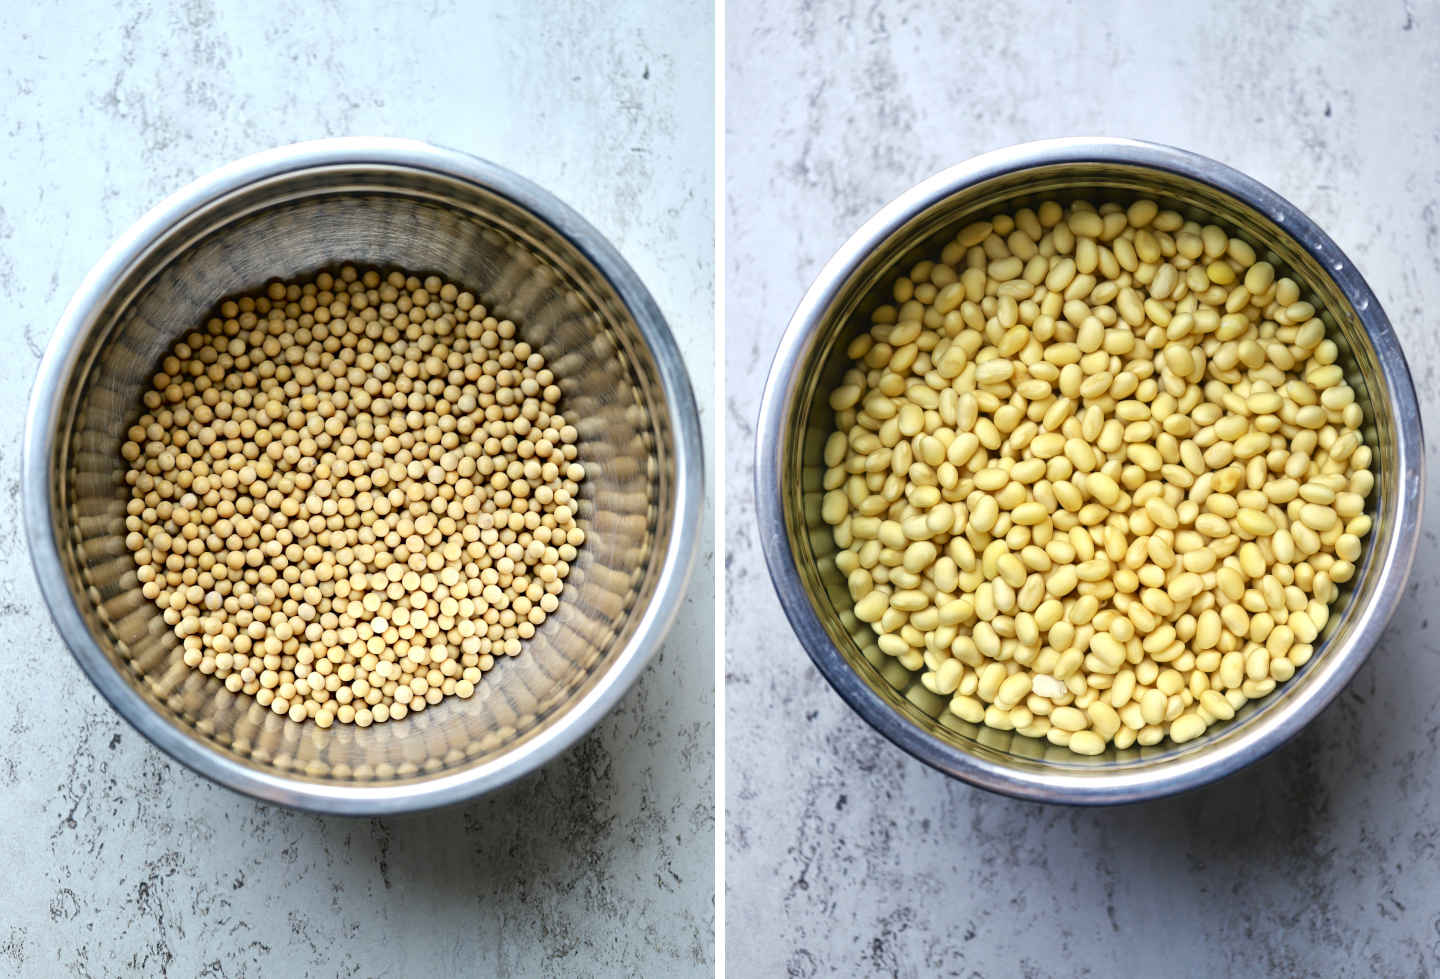 dry vs. sprouted soybeans